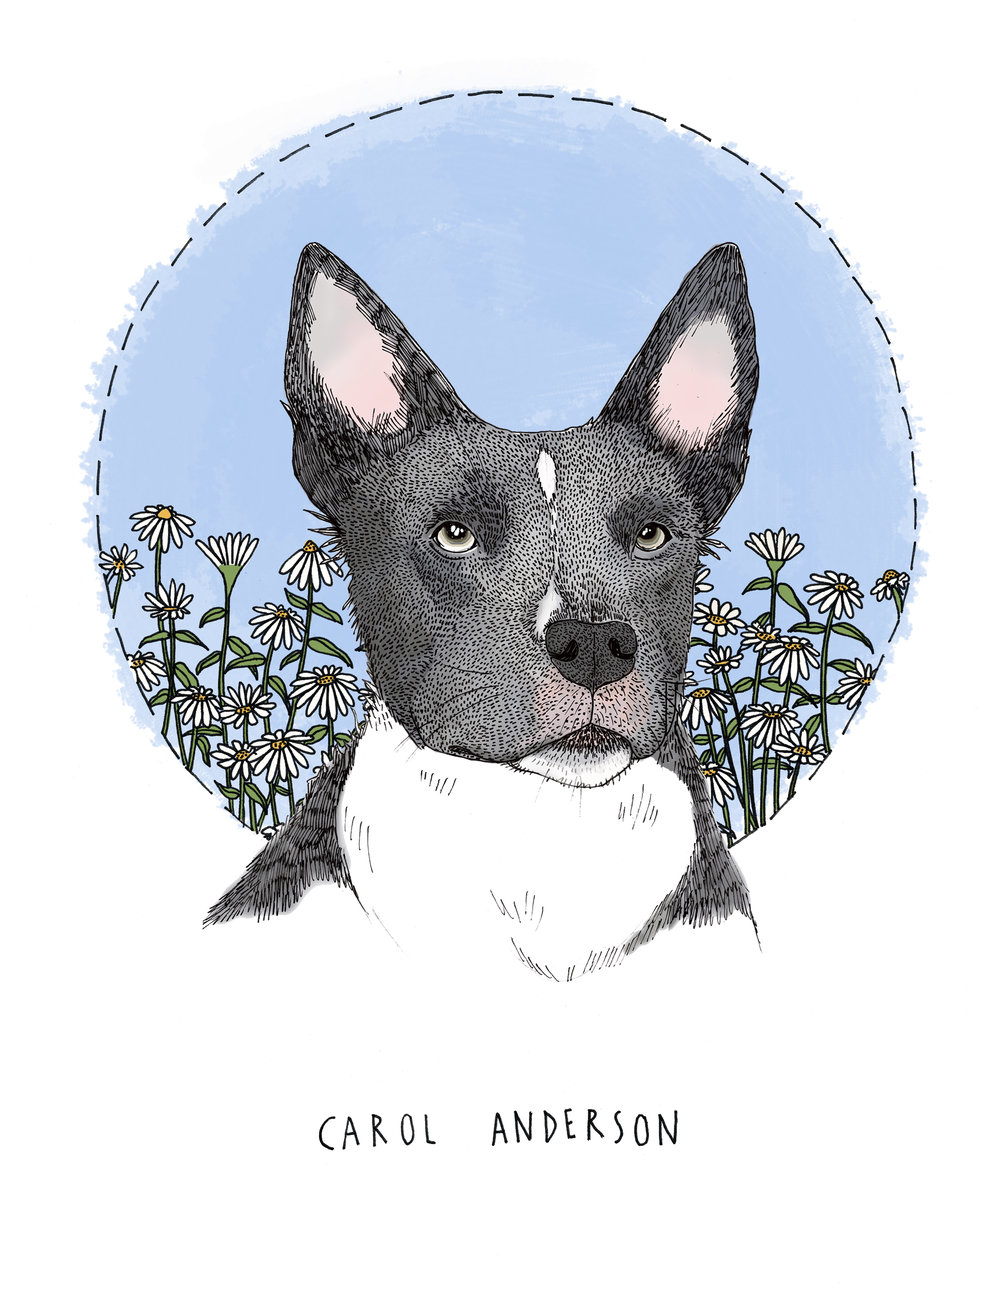 Carol Anderson  Pet Portrait Commission  Pen and ink with digitally added color.   2017